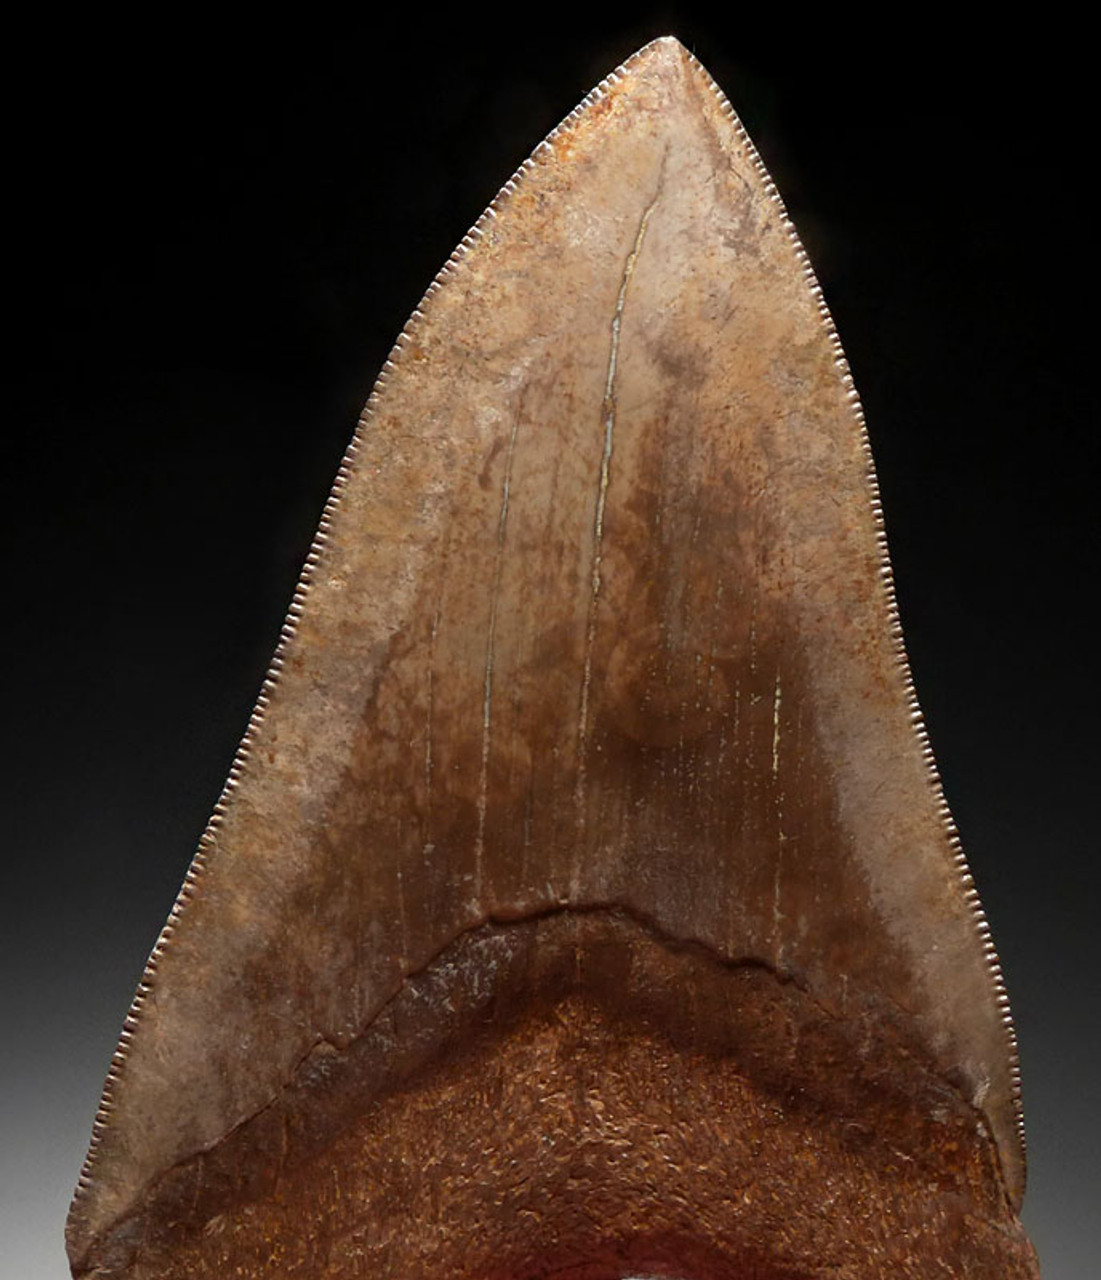 SH6-383 - COLLECTOR GRADE 4.25 INCH IVORY AND COPPER MEGALODON SHARK TOOTH FROM THE LOWER JAW WITH ST MARYS RIVER OPEN SPOTTING